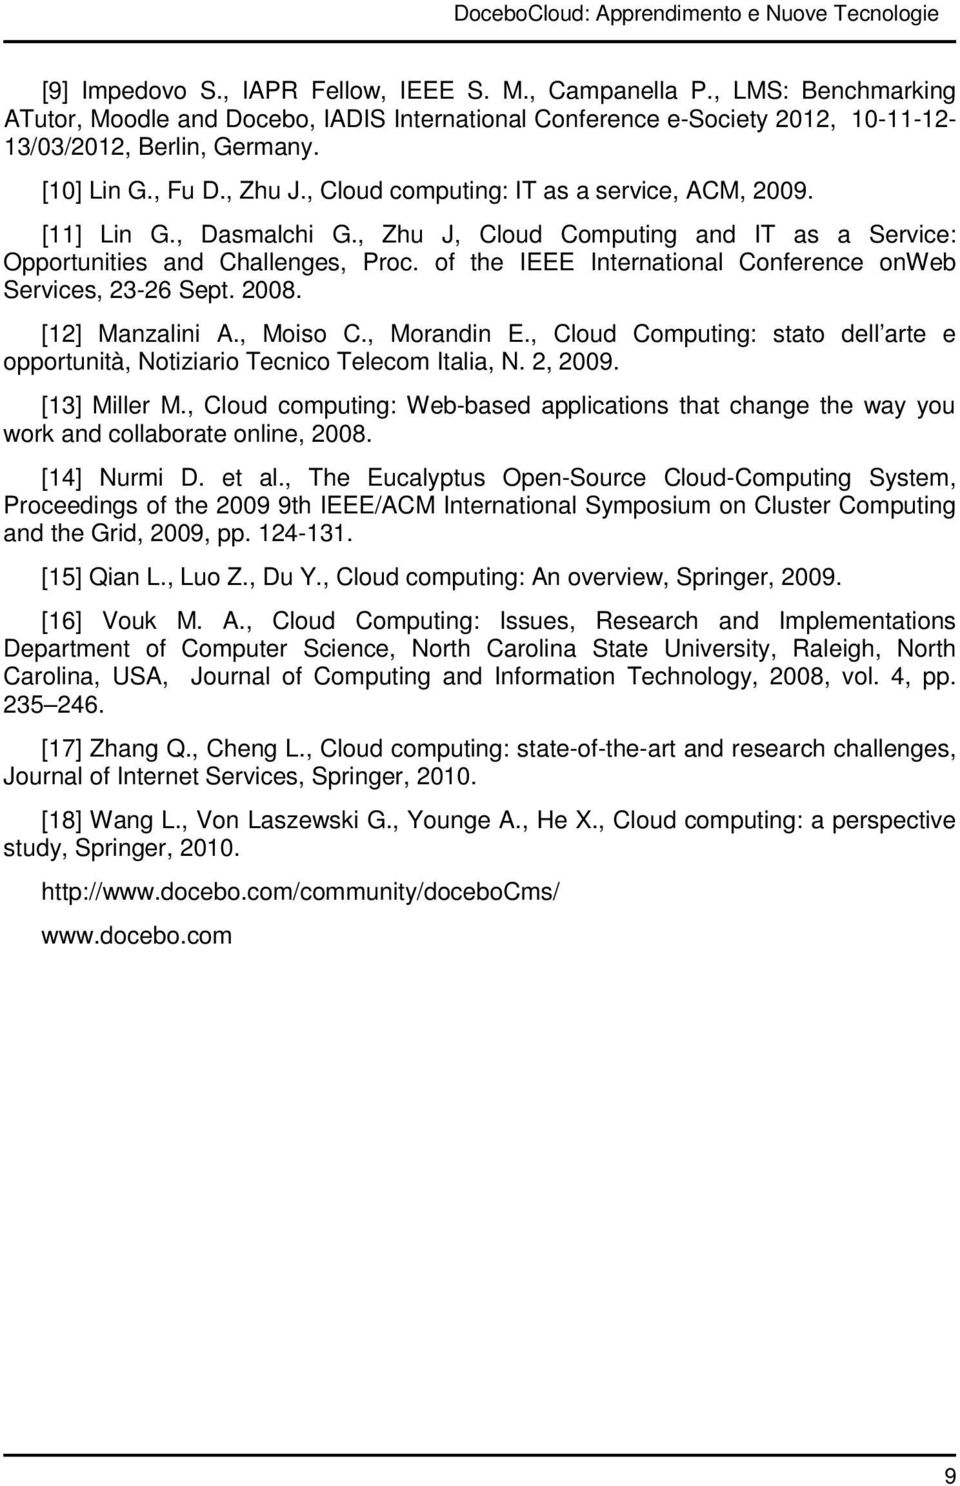 , Cloud computing: IT as a service, ACM, 2009. [11] Lin G., Dasmalchi G., Zhu J, Cloud Computing and IT as a Service: Opportunities and Challenges, Proc.